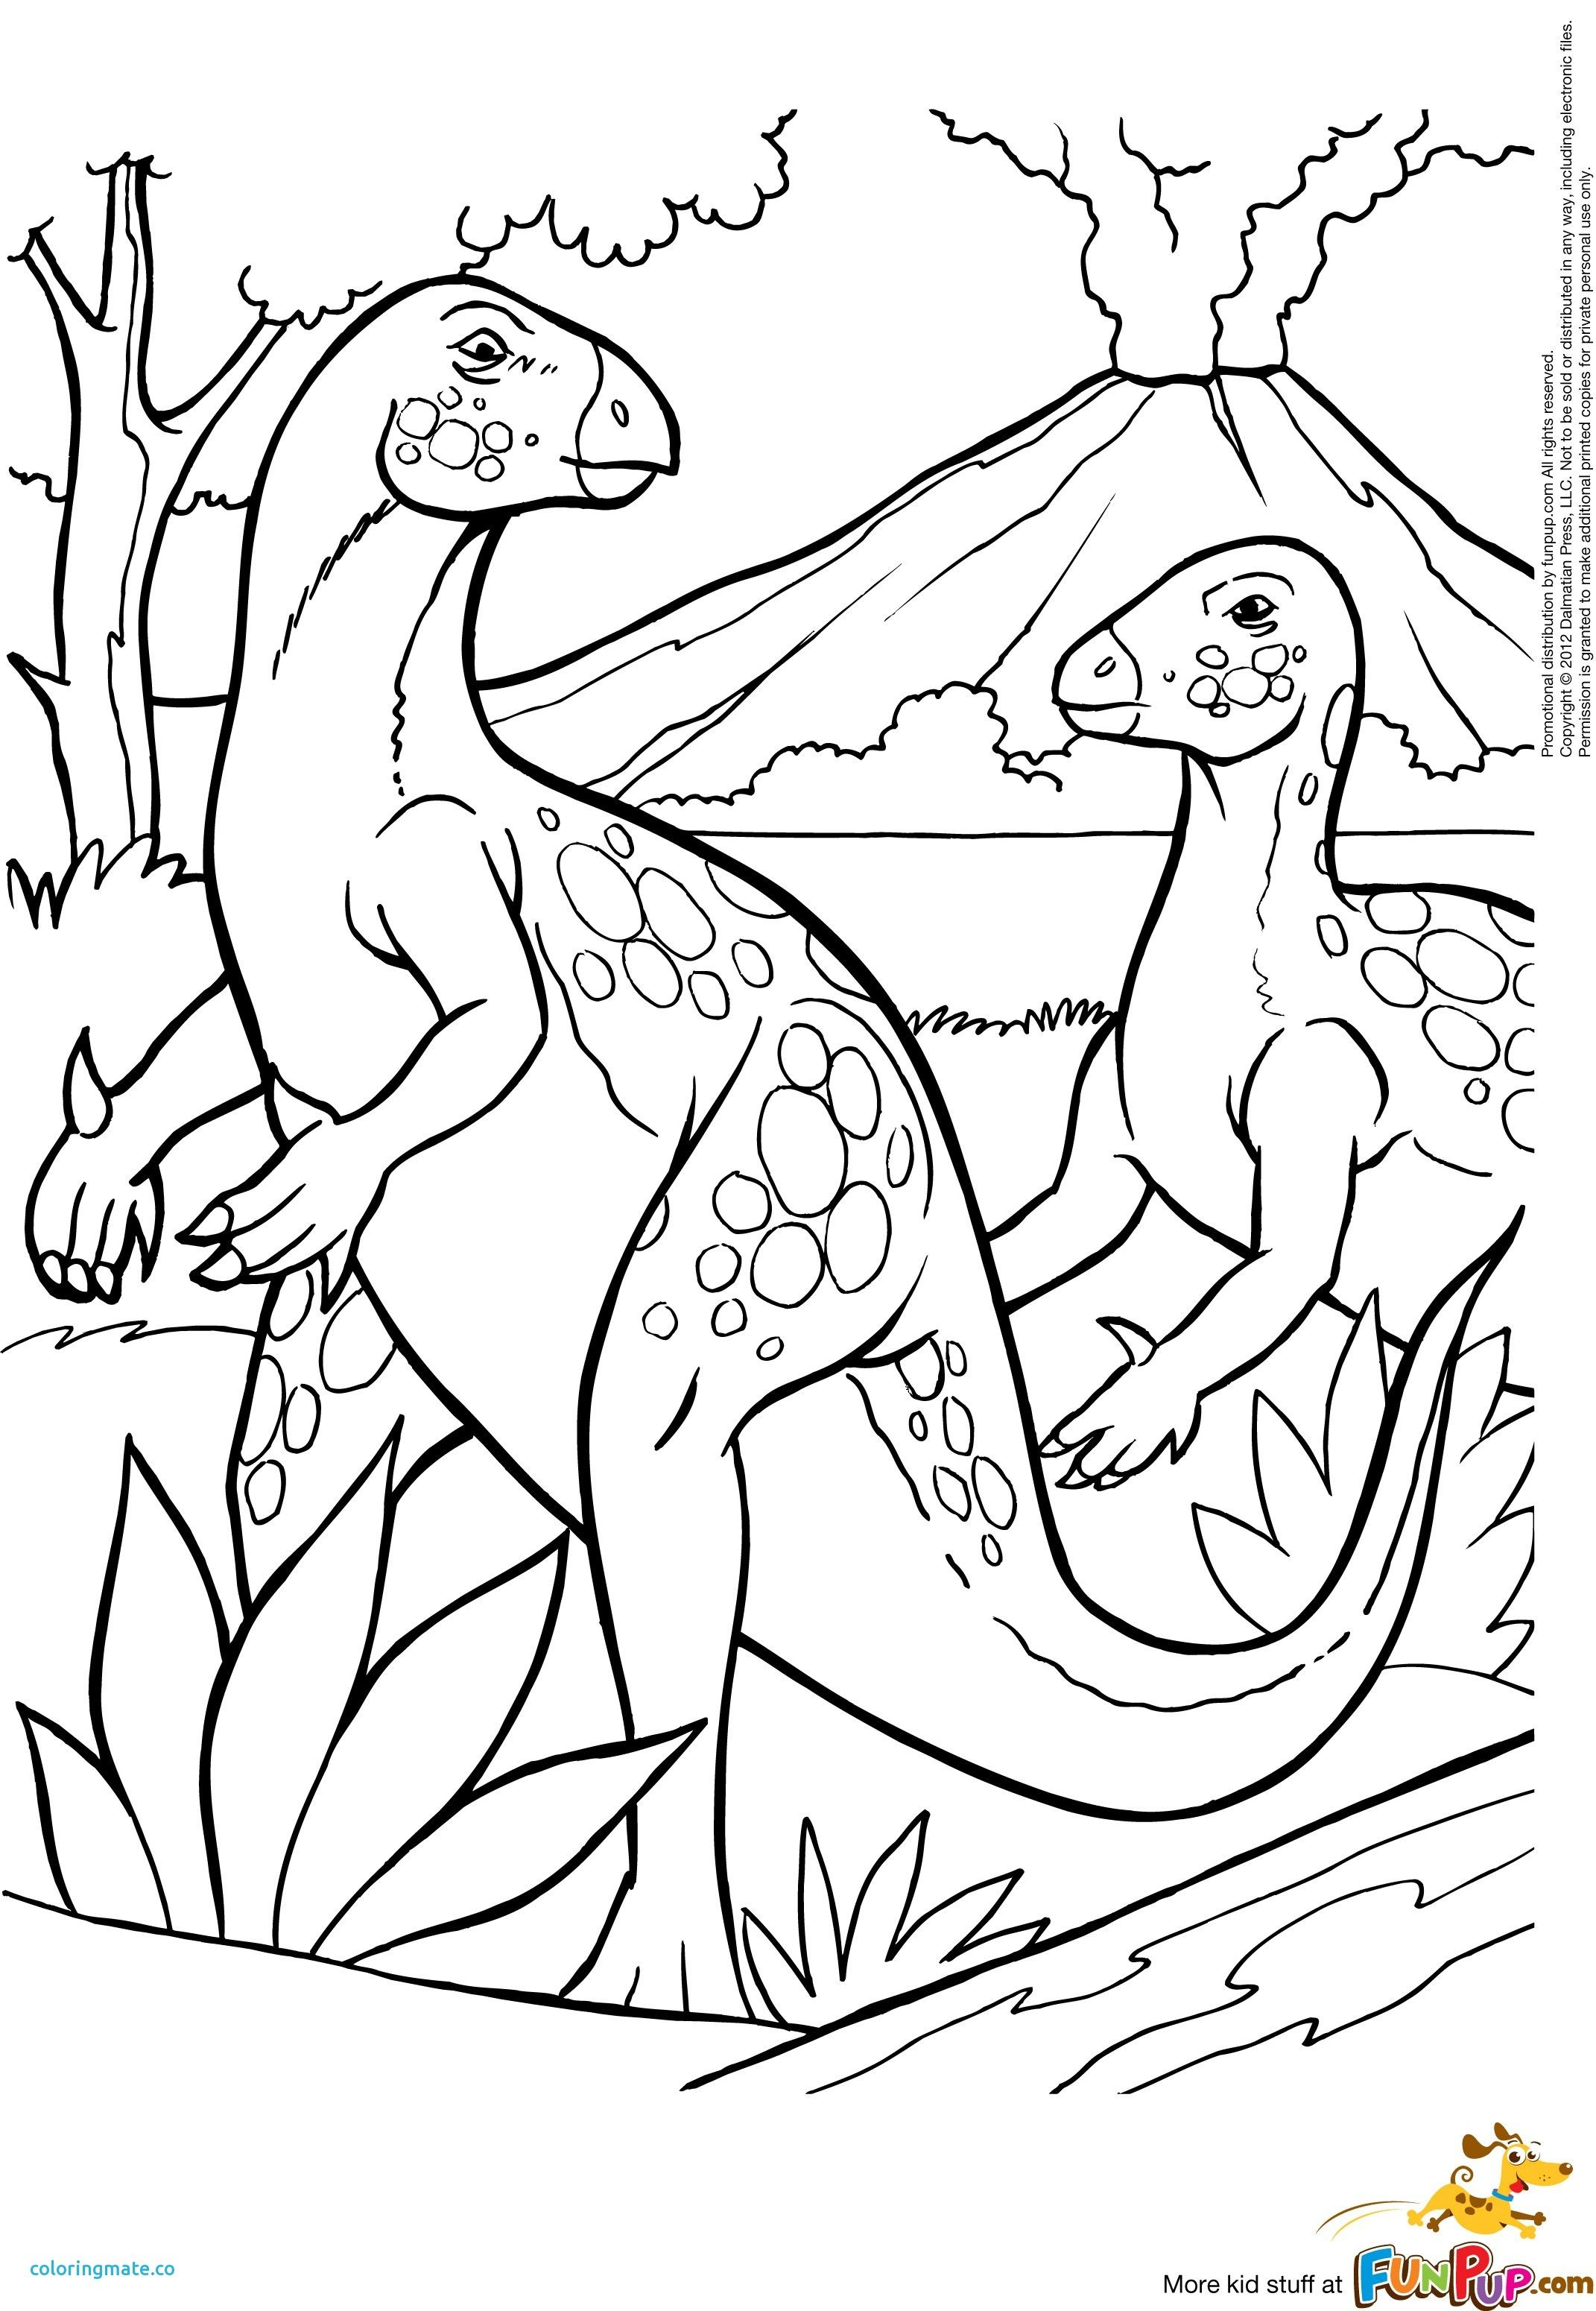 Dinosaurs With Volcano 0 00 Dinosaurs For Kids Pinterest Of Coloriage Mandala Dinosaure Coloring Pages Winter Dinosaur Coloring Pages Coloring Pages Nature